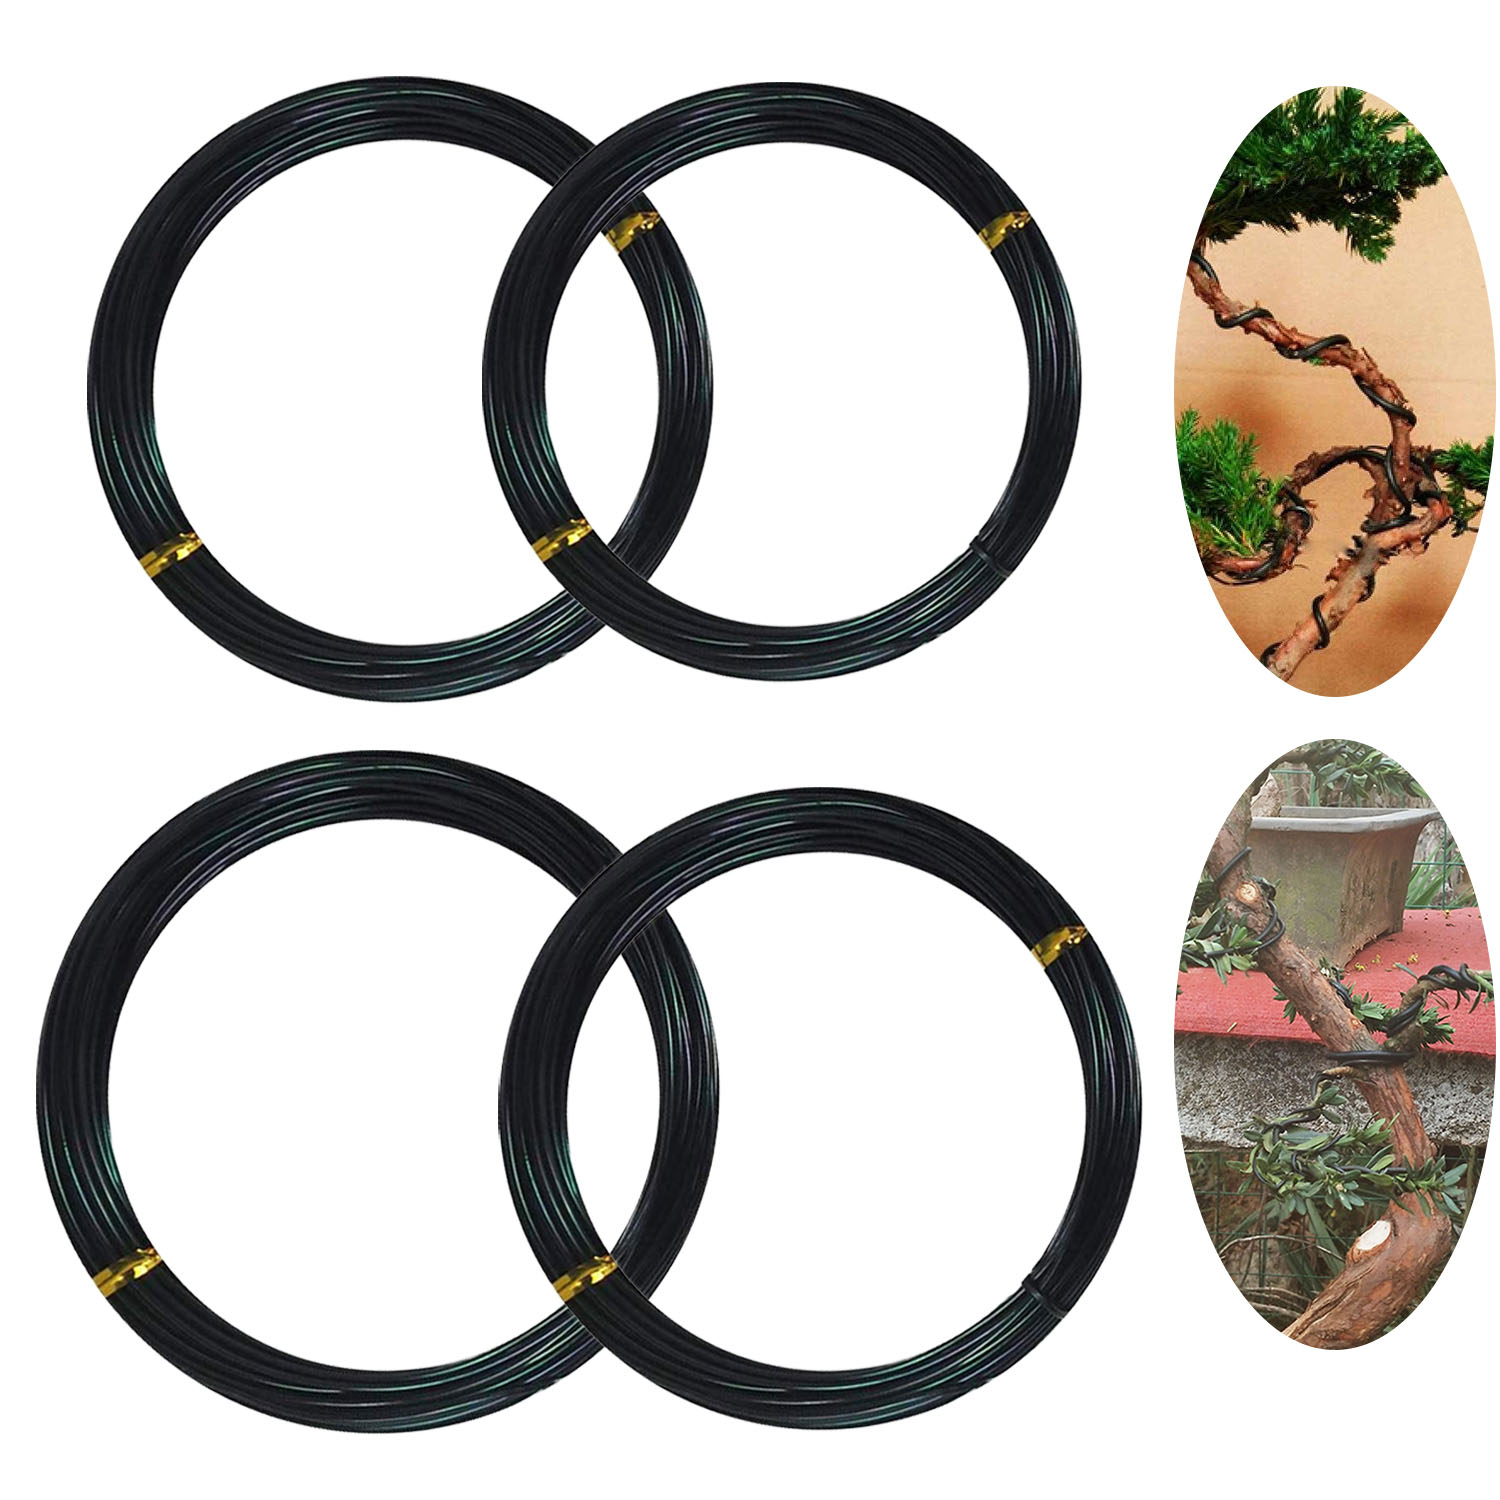 4 Roll 10m Aluminum Tree Training Wires for Garden Plants Bonsai Beginners Trainers Artists 1.0mm/1.5mm/2mm/2.5mm Black4 Roll 10m Aluminum Tree Training Wires for Garden Plants Bonsai Beginners Trainers Artists 1.0mm/1.5mm/2mm/2.5mm Black